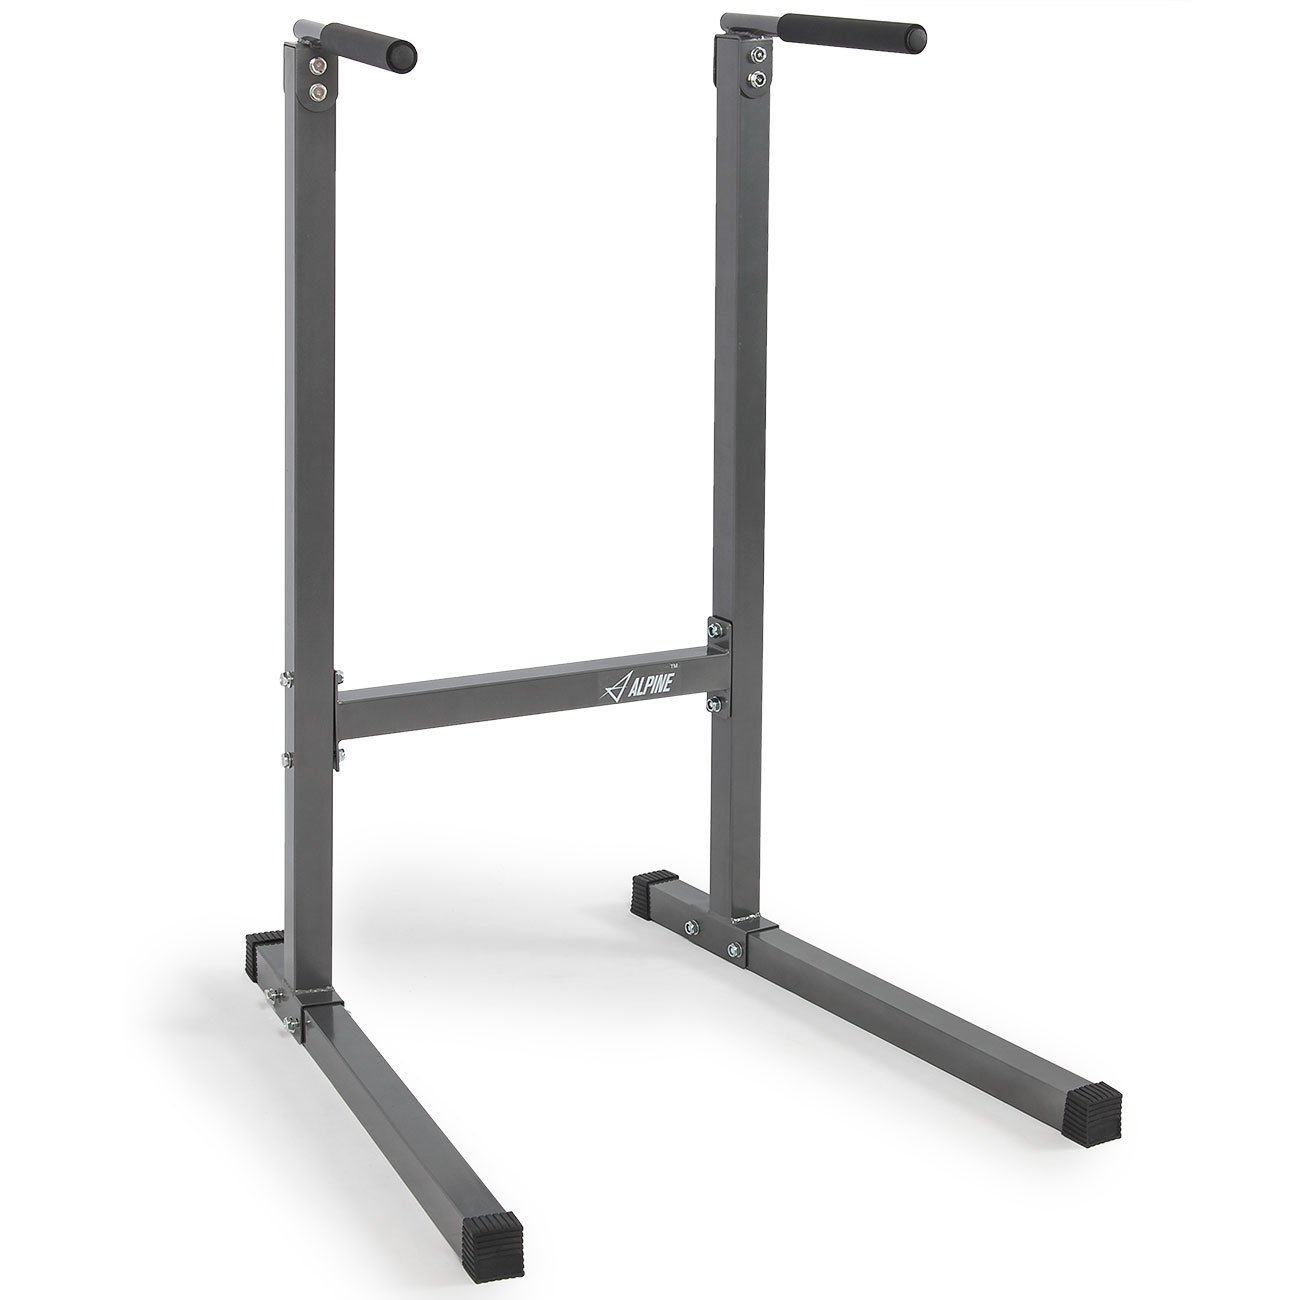 Globe House Products GHP Gray 38'' Lx33.5 Wx49.5 H Freestanding Lightweight Exercise Training Dip Station by Globe House Products